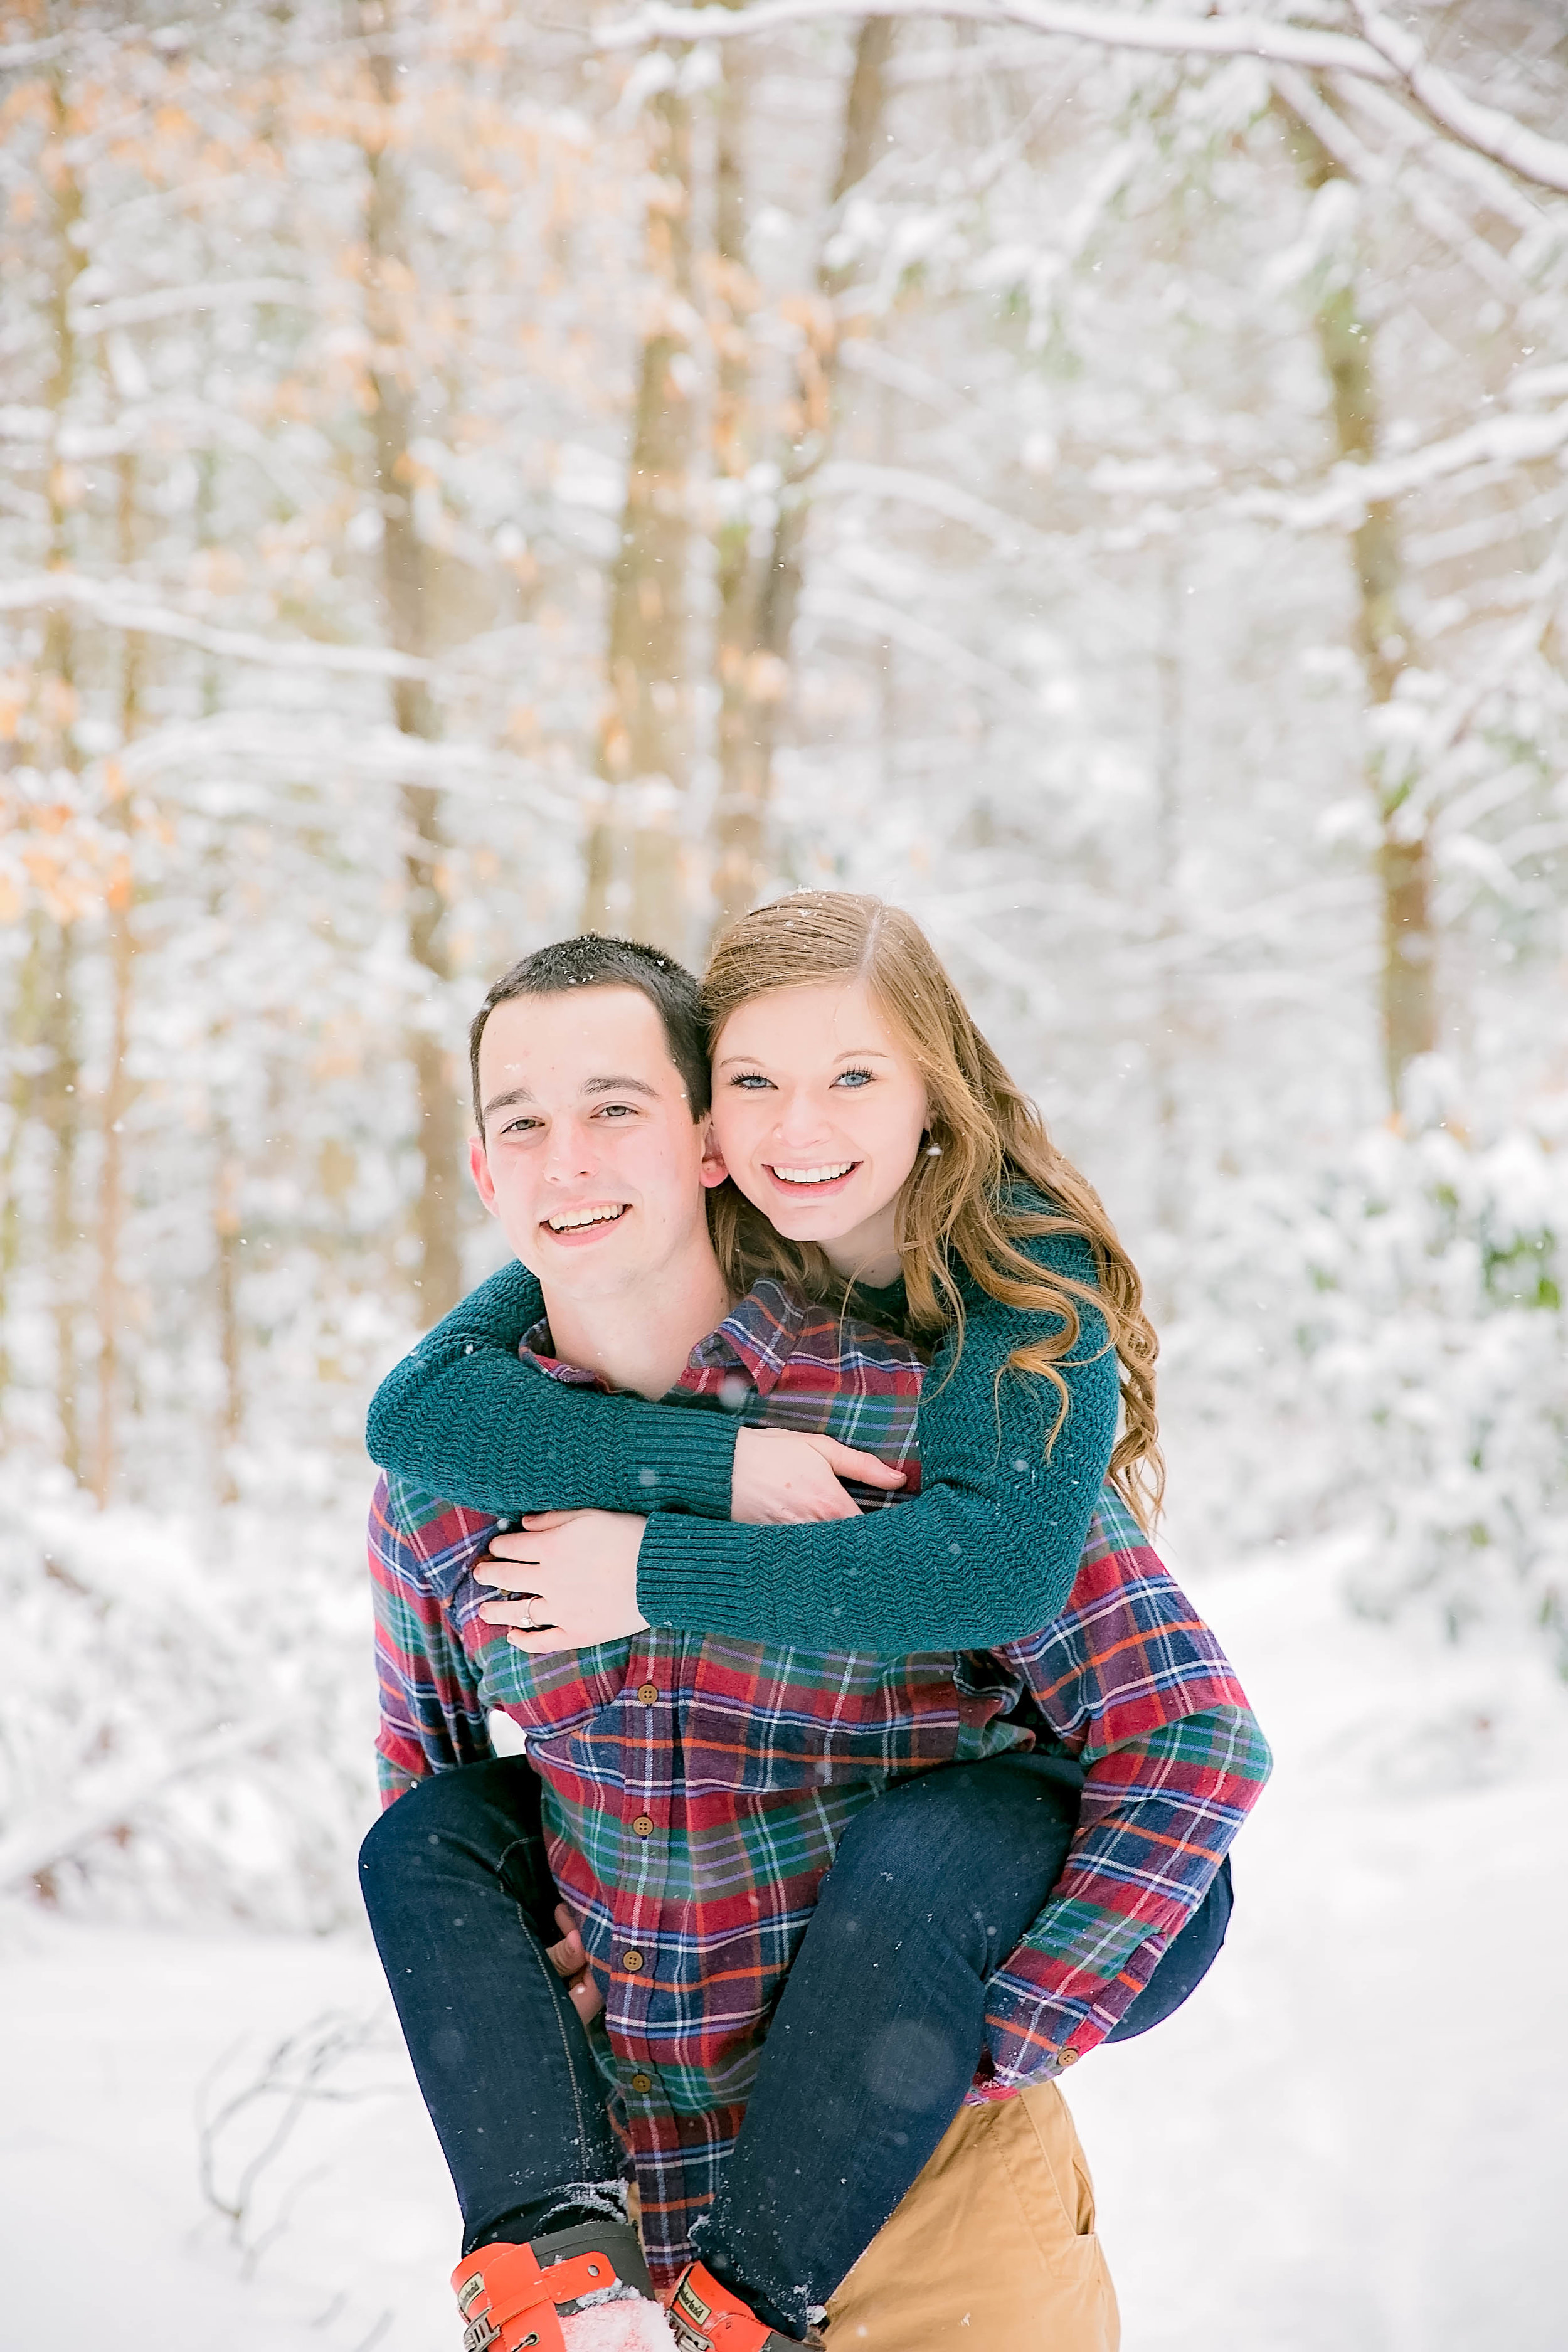 Playful snowy engagement